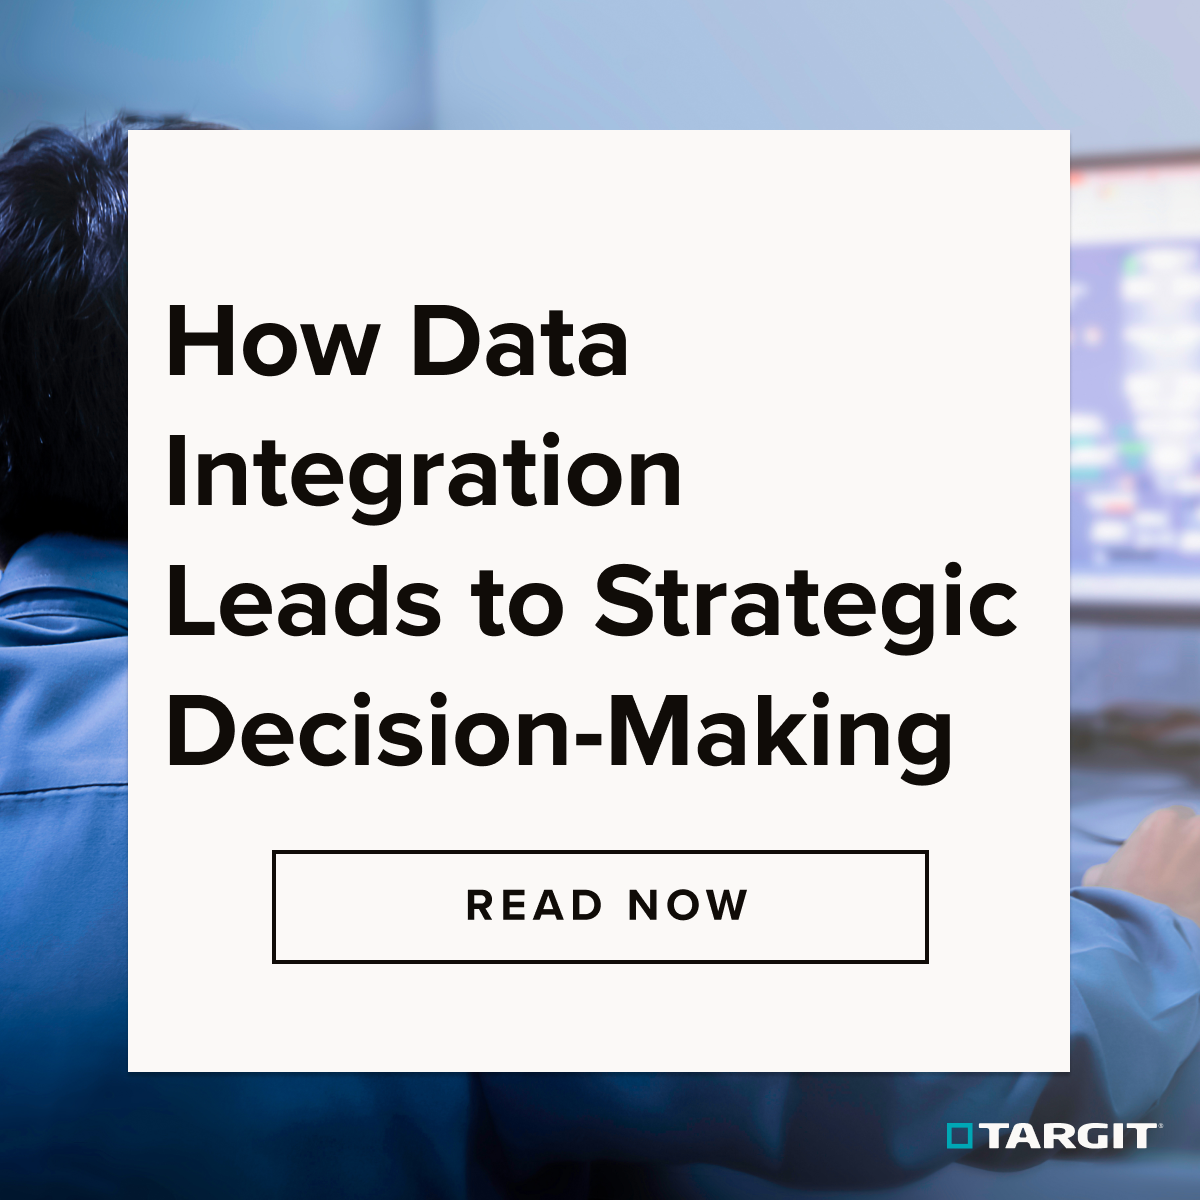 How Data Integration Leads to Strategic Decision-Making